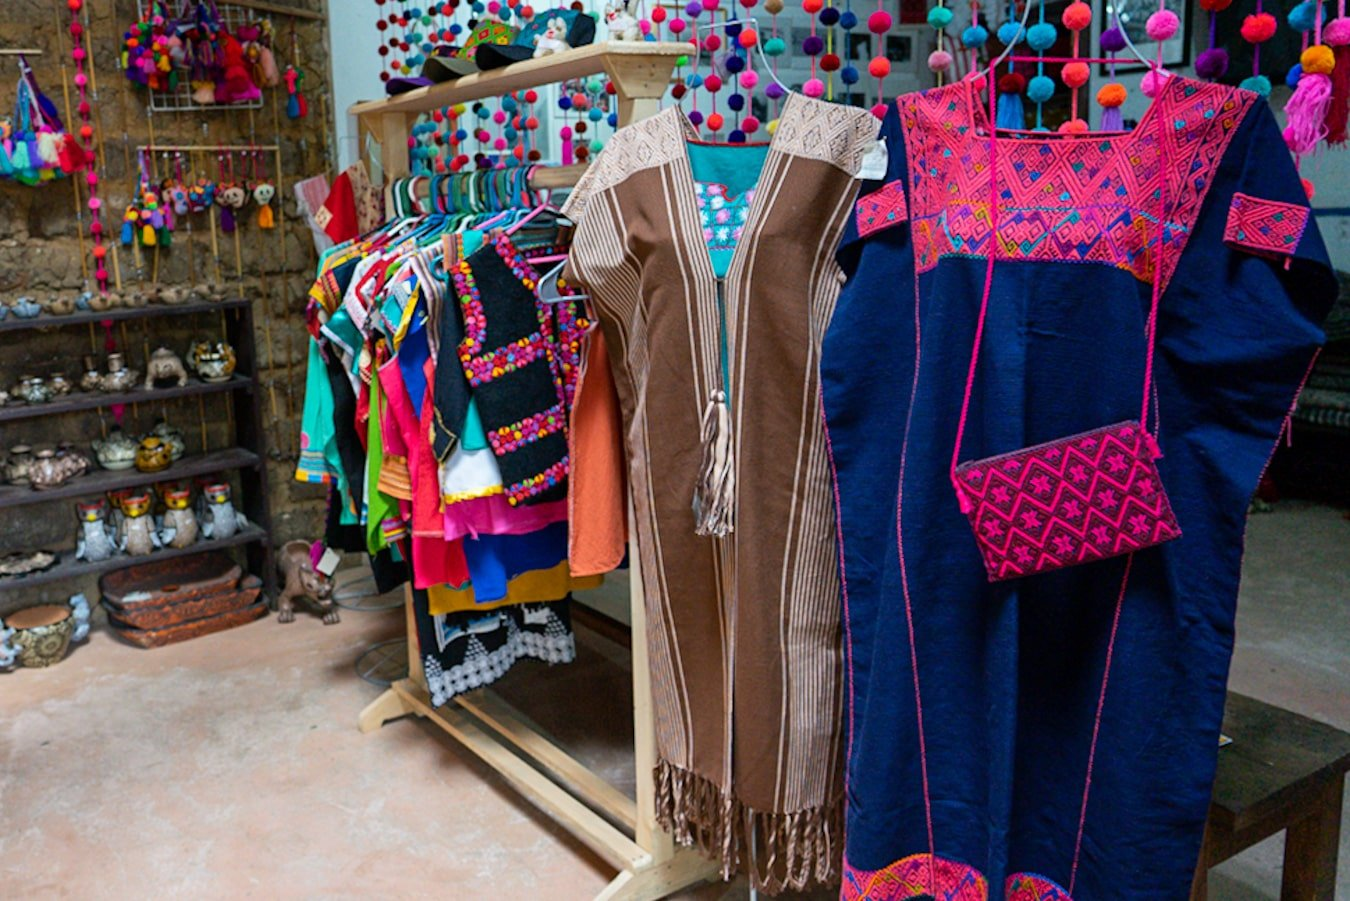 traditiona textiles in na bolom shop made by indigenous communities in chiapas mexico